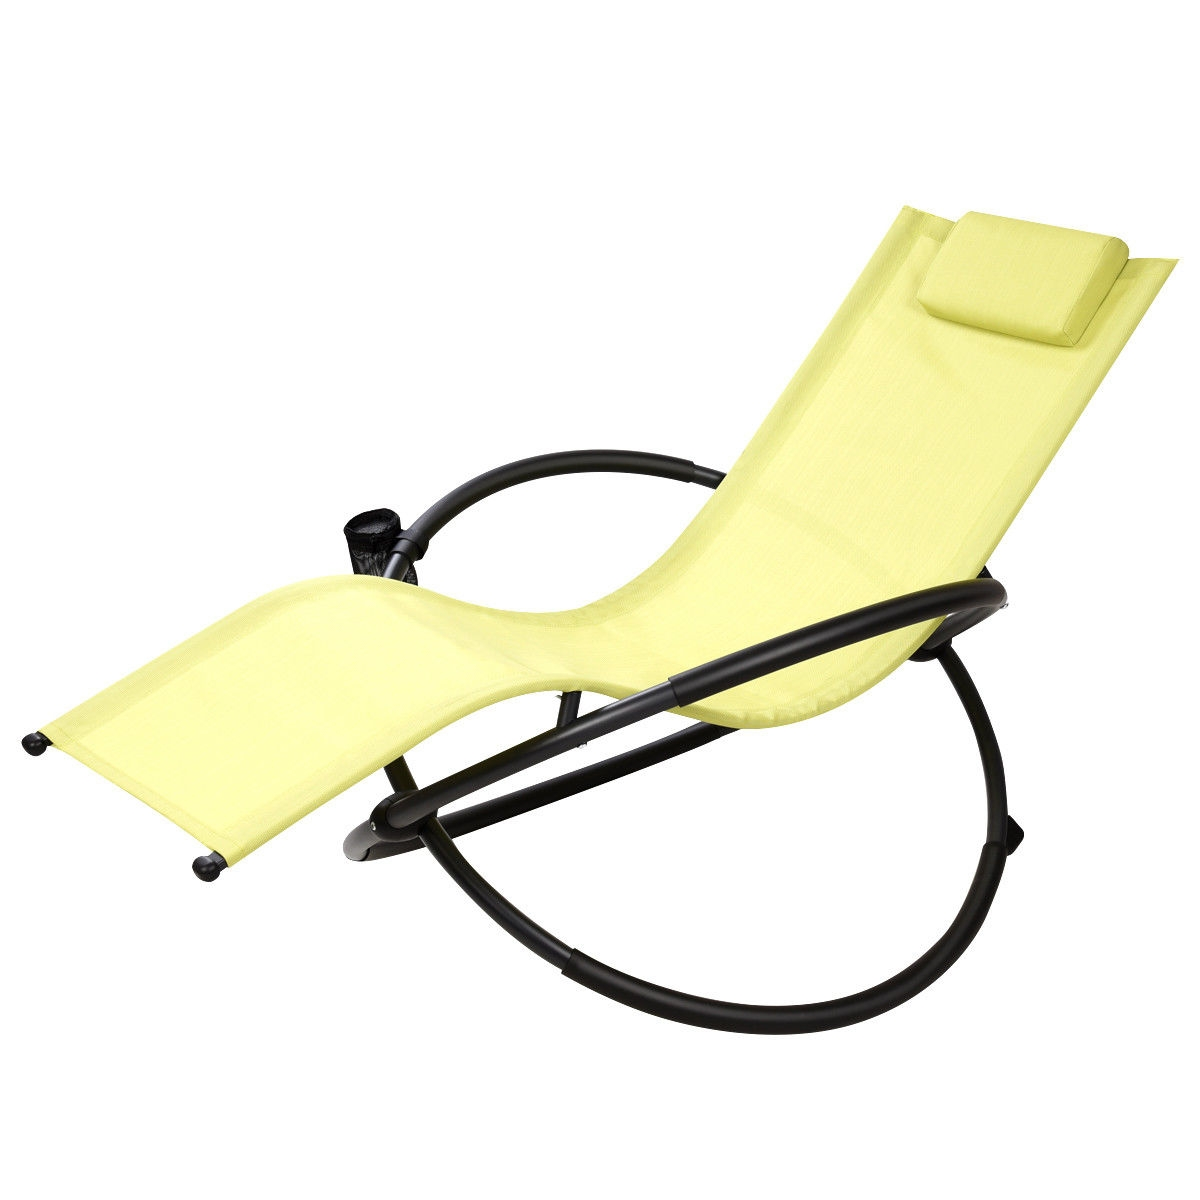 Gravity Lounge Chair Folding Zero Gravity Lounge Chair With Removable Pillow